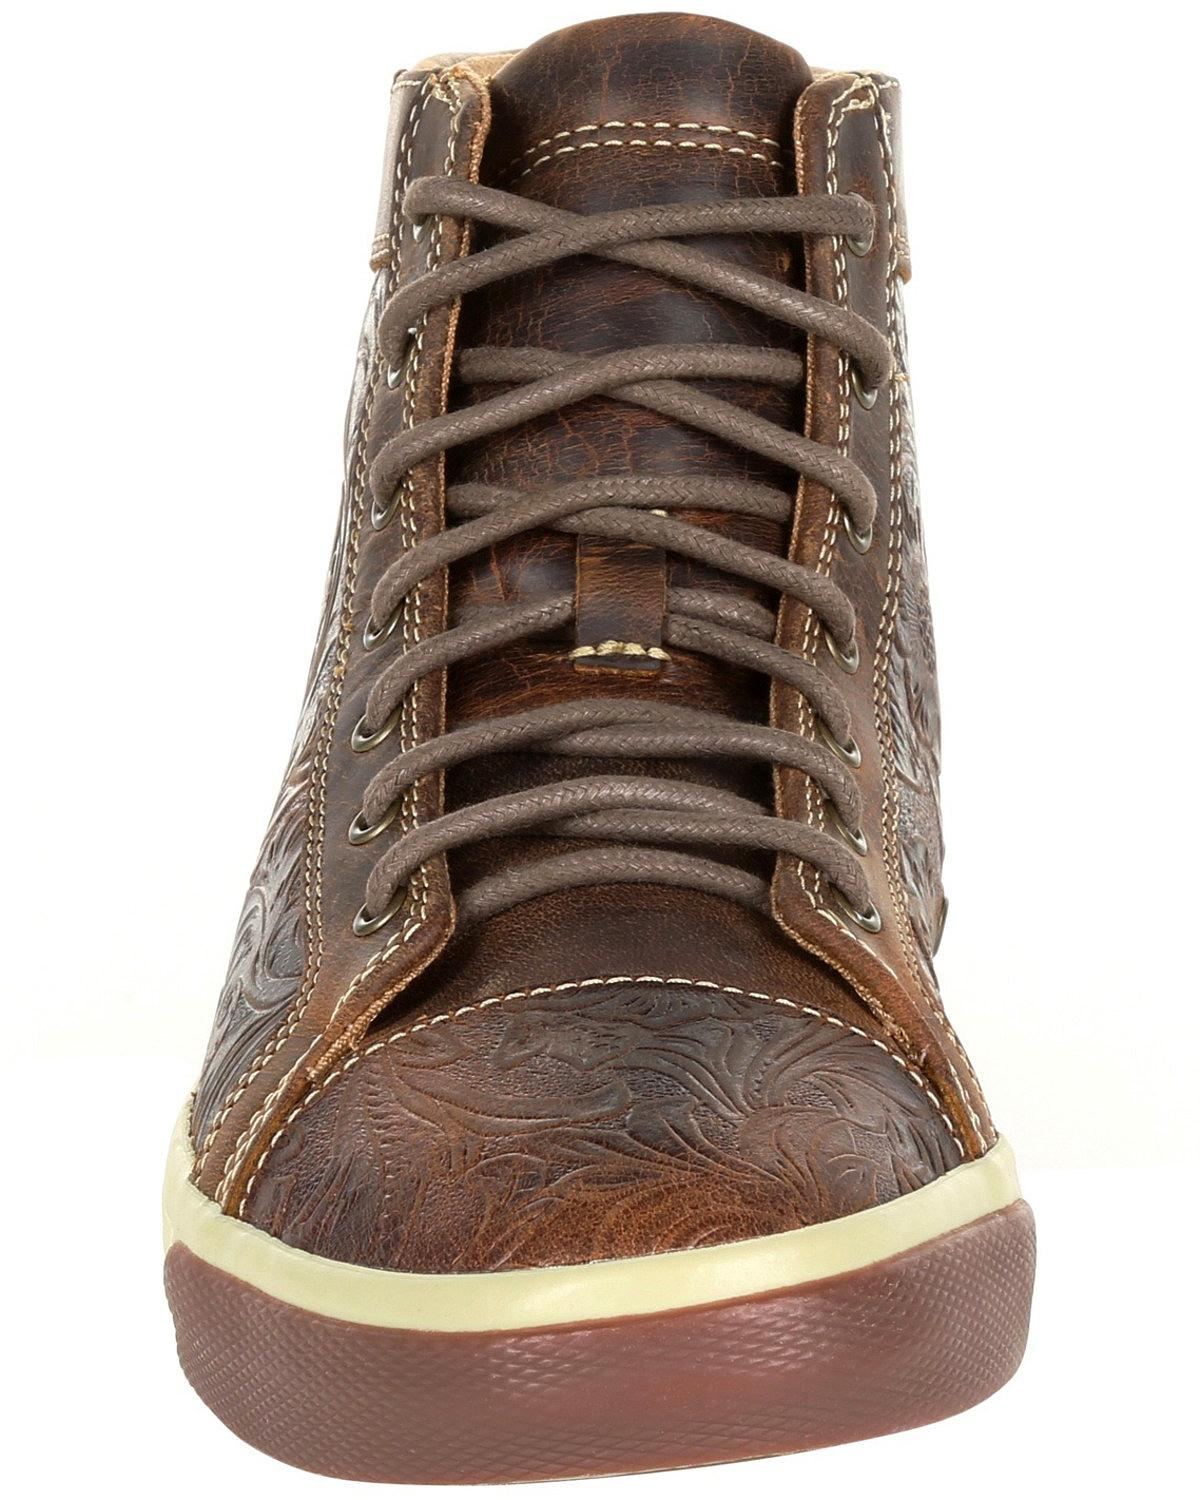 Durango Women's Western Embossed High-Top High-Top High-Top Sneakers - Round Toe - DRD0308 d819d9